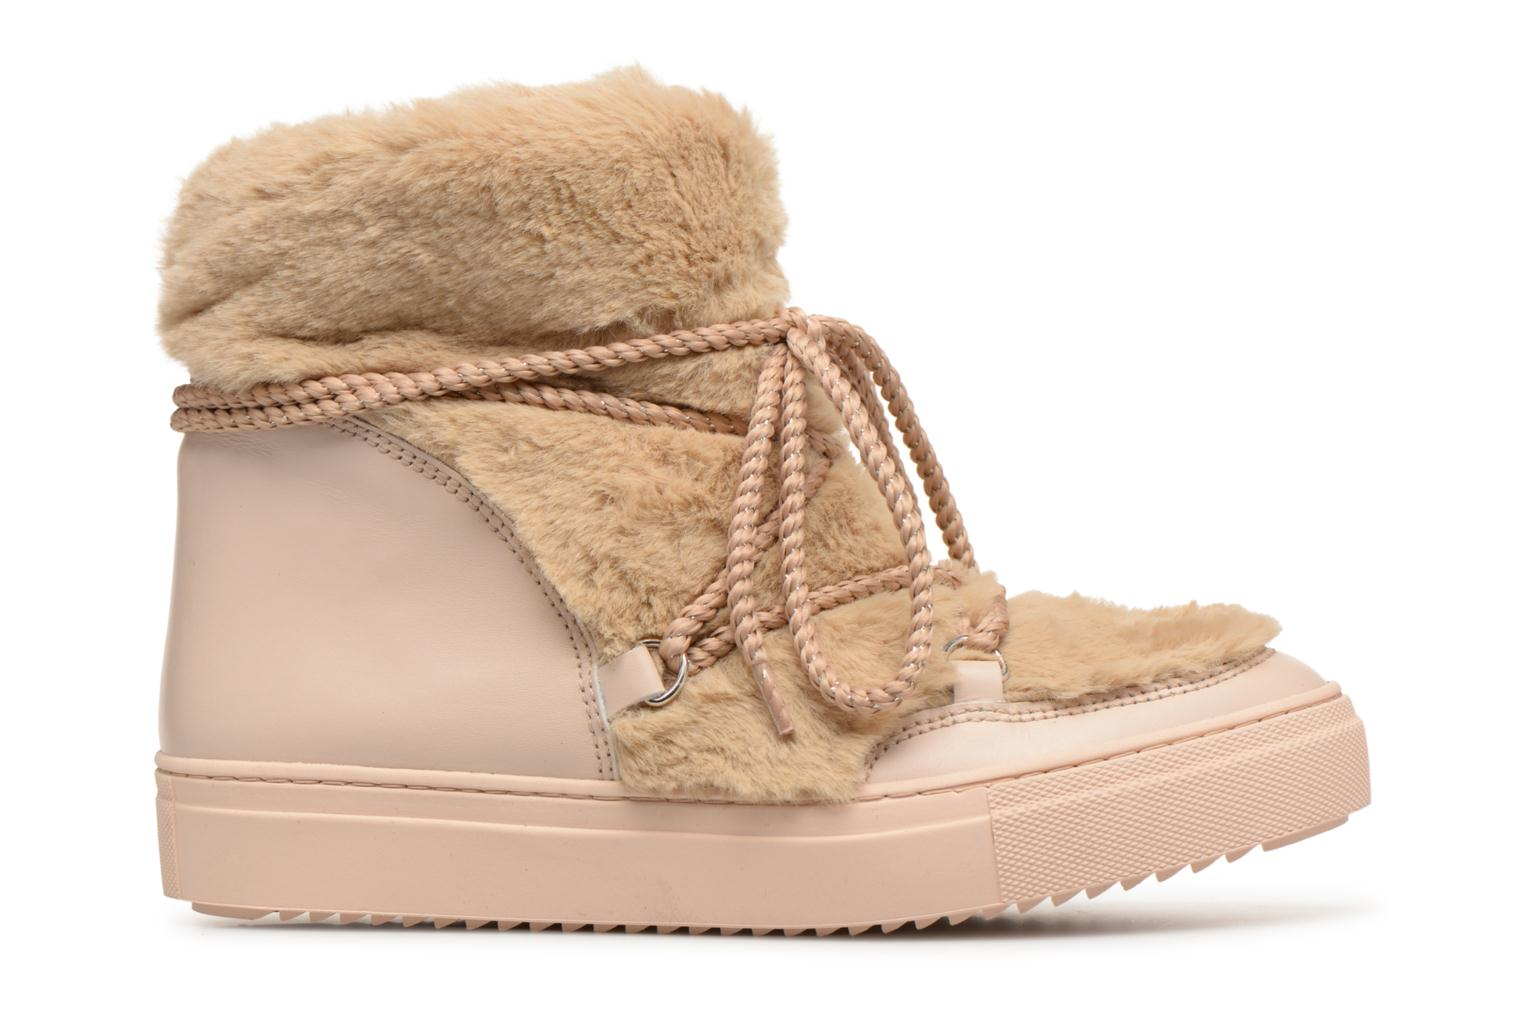 Rosecuir Bottines By Sarenza Lisse Rose 1 Moumoute Made